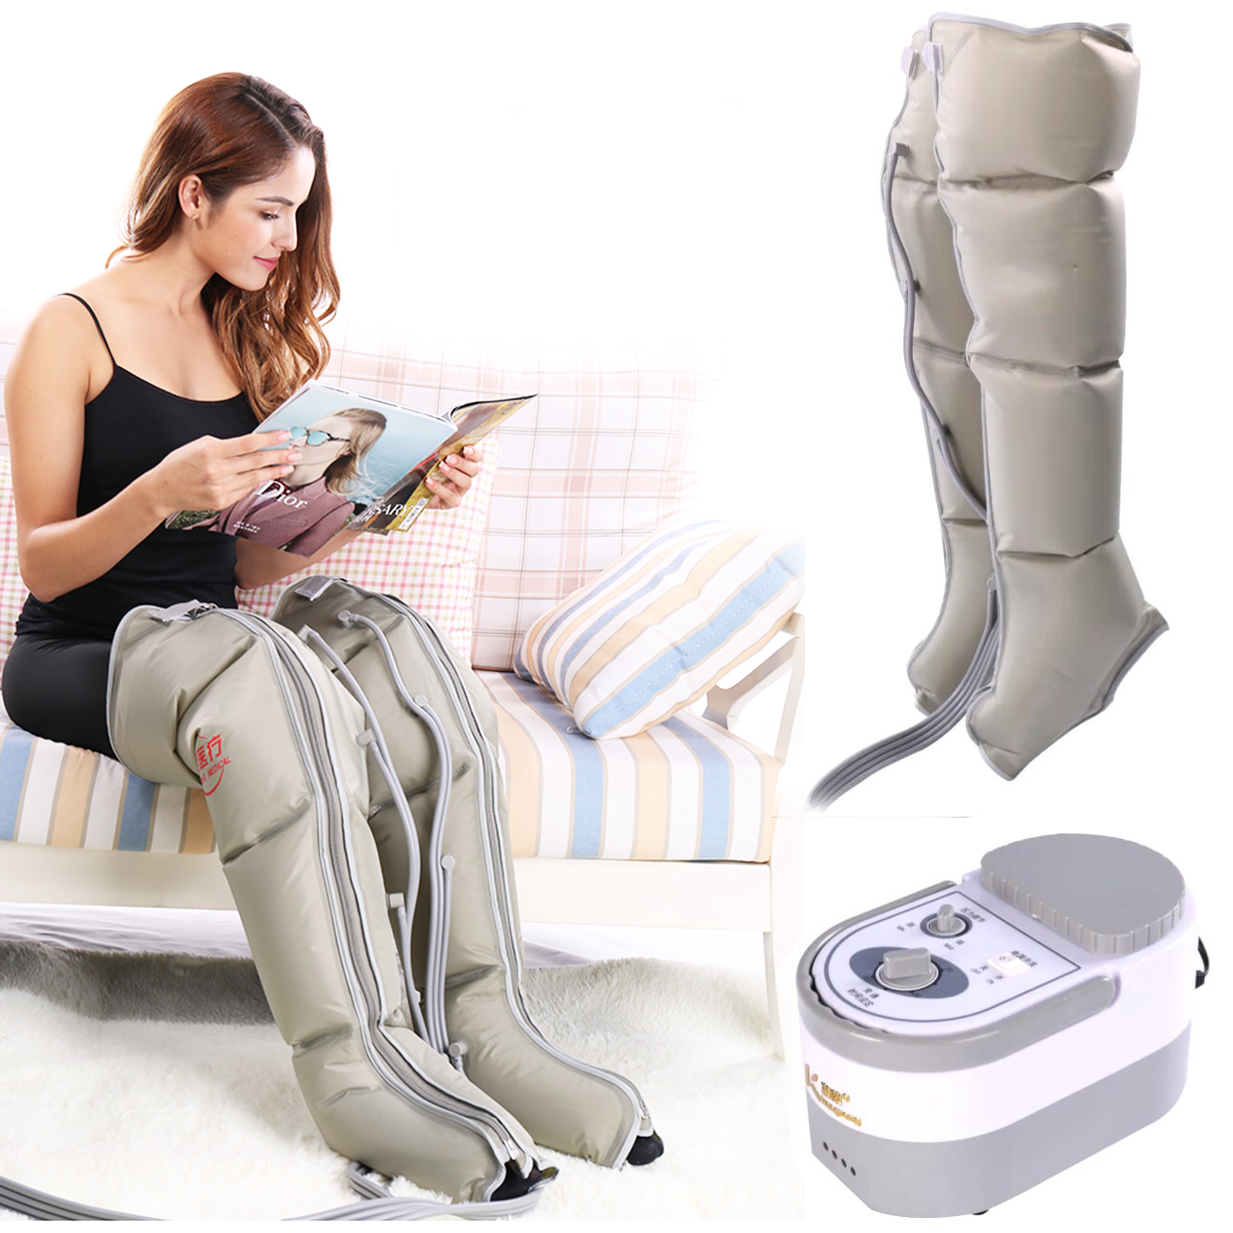 electric air compression leg massager leg wraps foot ankles calf massage machine promote blood. Black Bedroom Furniture Sets. Home Design Ideas